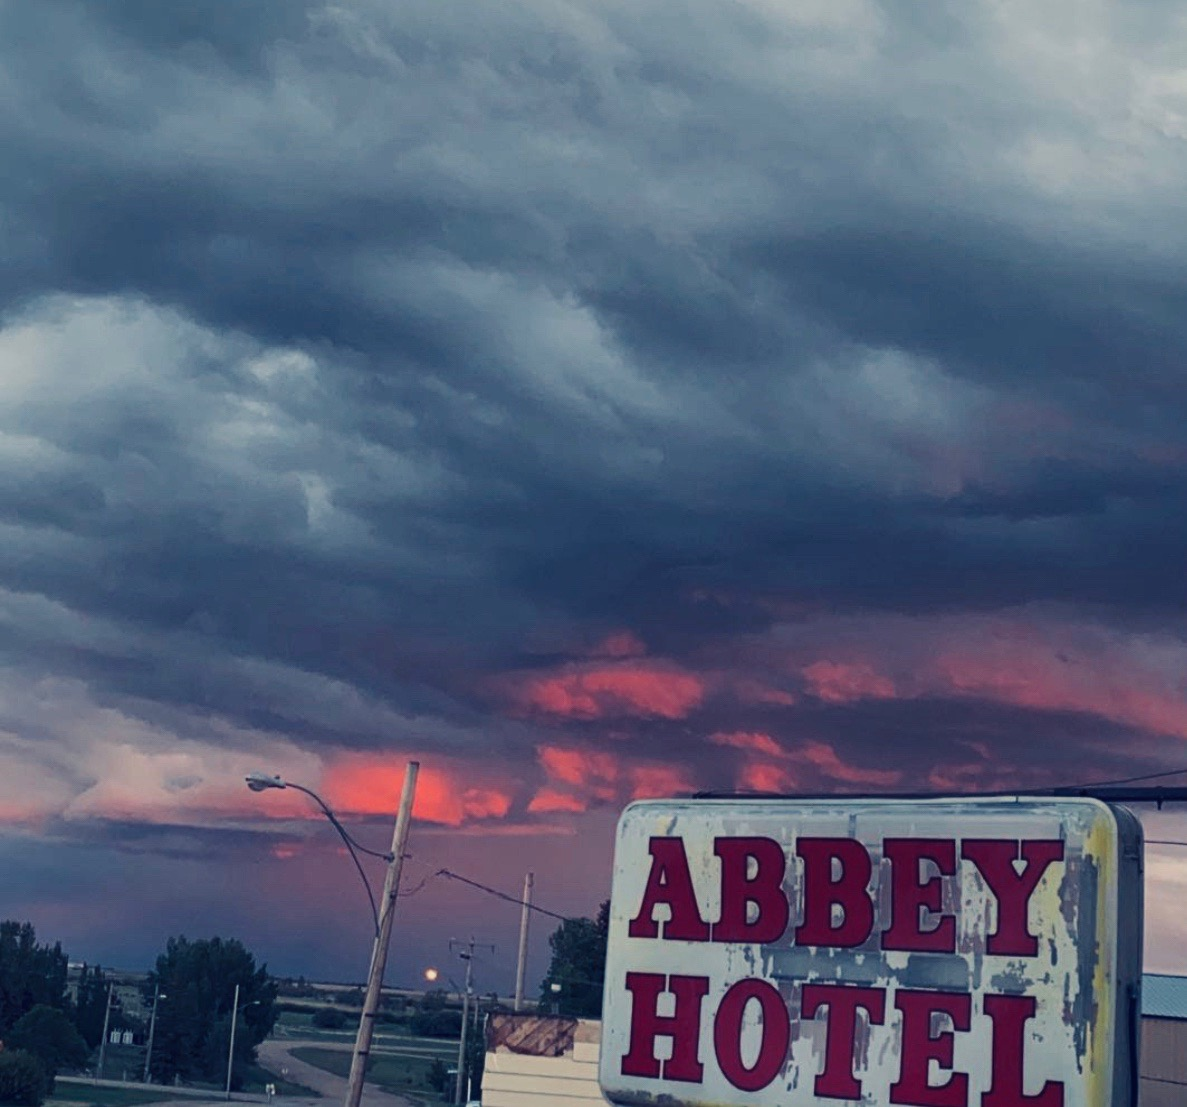 Sign of the Abbey Hotel in Swift Current highlighted against a dark and colourful night sky.